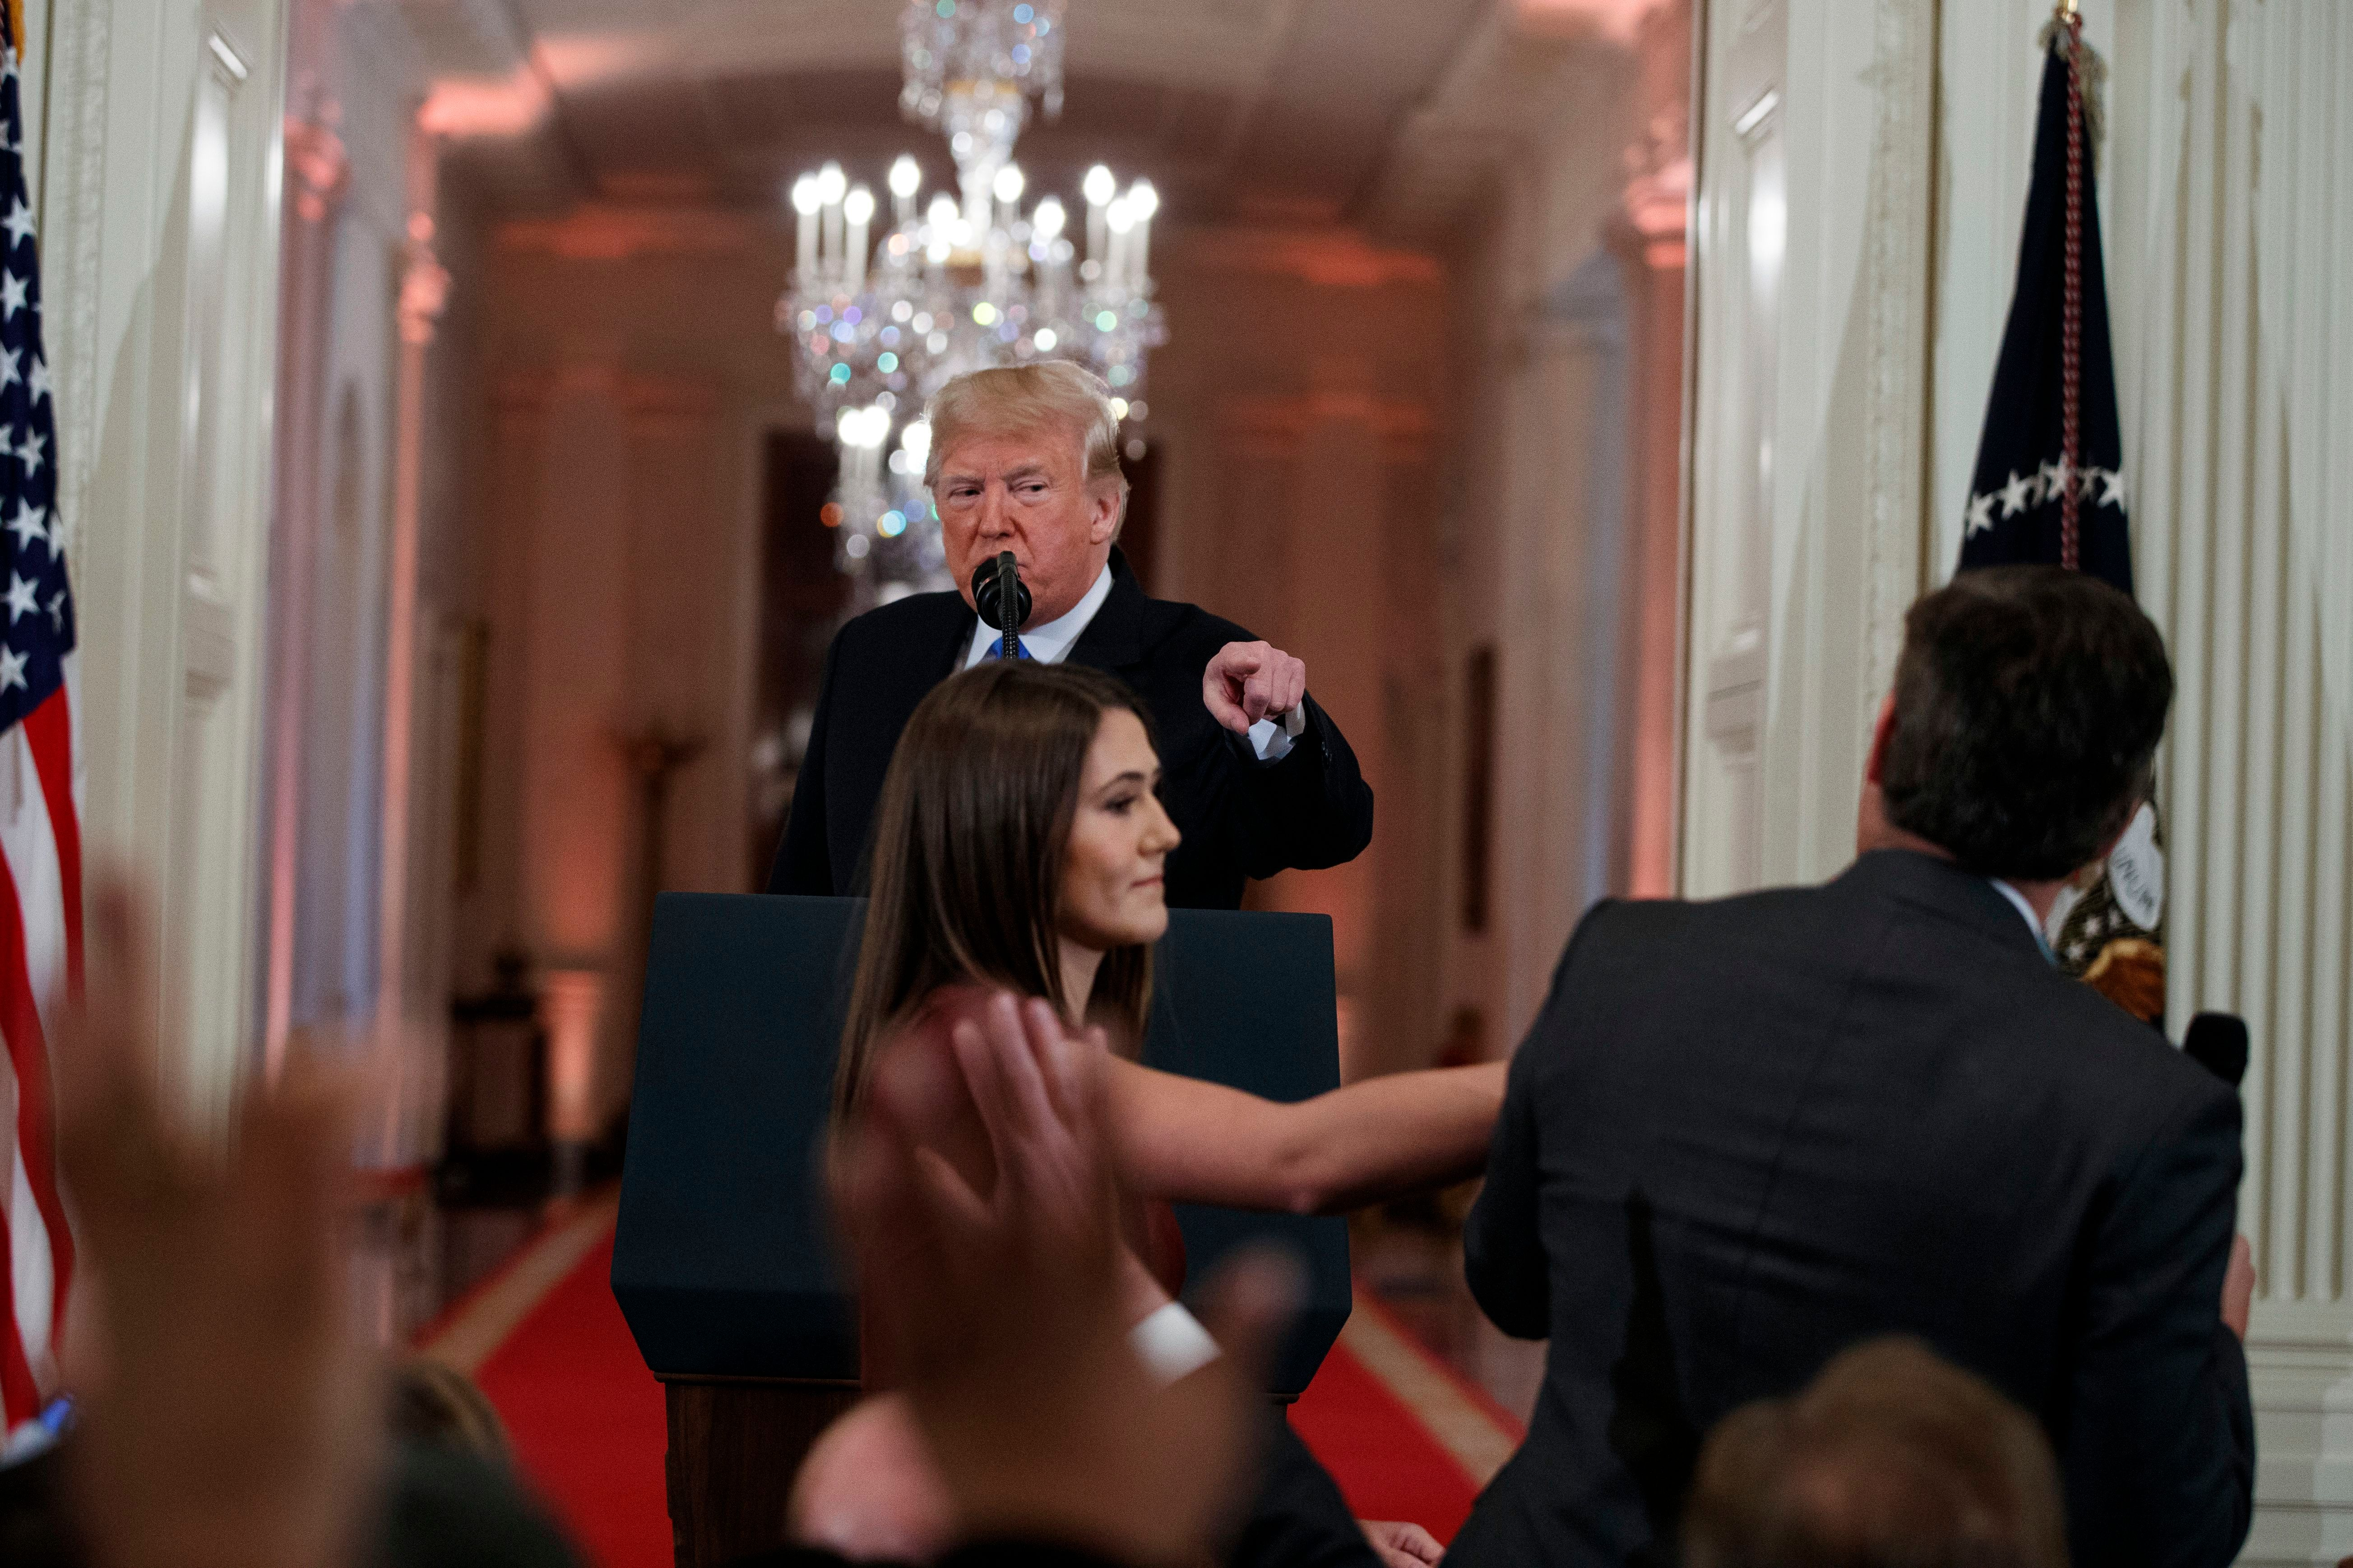 Donald Trump, Jim Acosta. President Donald Trump watches as a White House aide reaches to take away a microphone from CNN journalist Jim Acosta during a news conference in the East Room of the White House in Washington. CNN is suing the Trump administration, demanding that Acosta's press credentials to cover the White House be returned. The administration revoked them last week following President Trump's contentious news conference, where Acosta refused to give up a microphone when the president said he didn't want to hear anything more from himMedia CNN vs Trump, Washington, USA - 07 Nov 2018